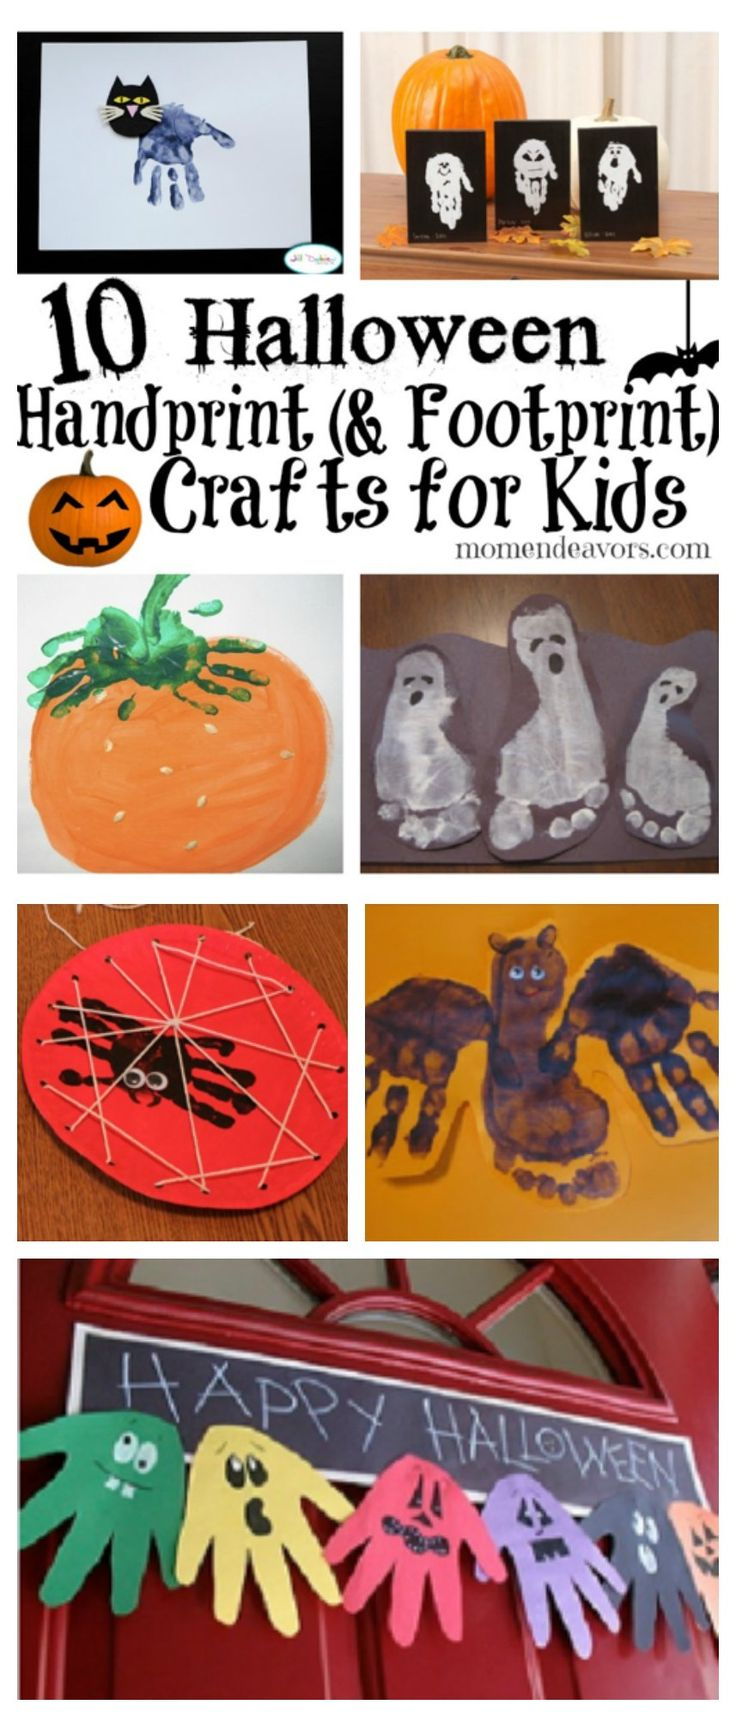 Imagen de http://www.momendeavors.com/wp-content/uploads/2012/10/Halloween-Handprint-Footprint-Crafts-for-Kids.jpg.